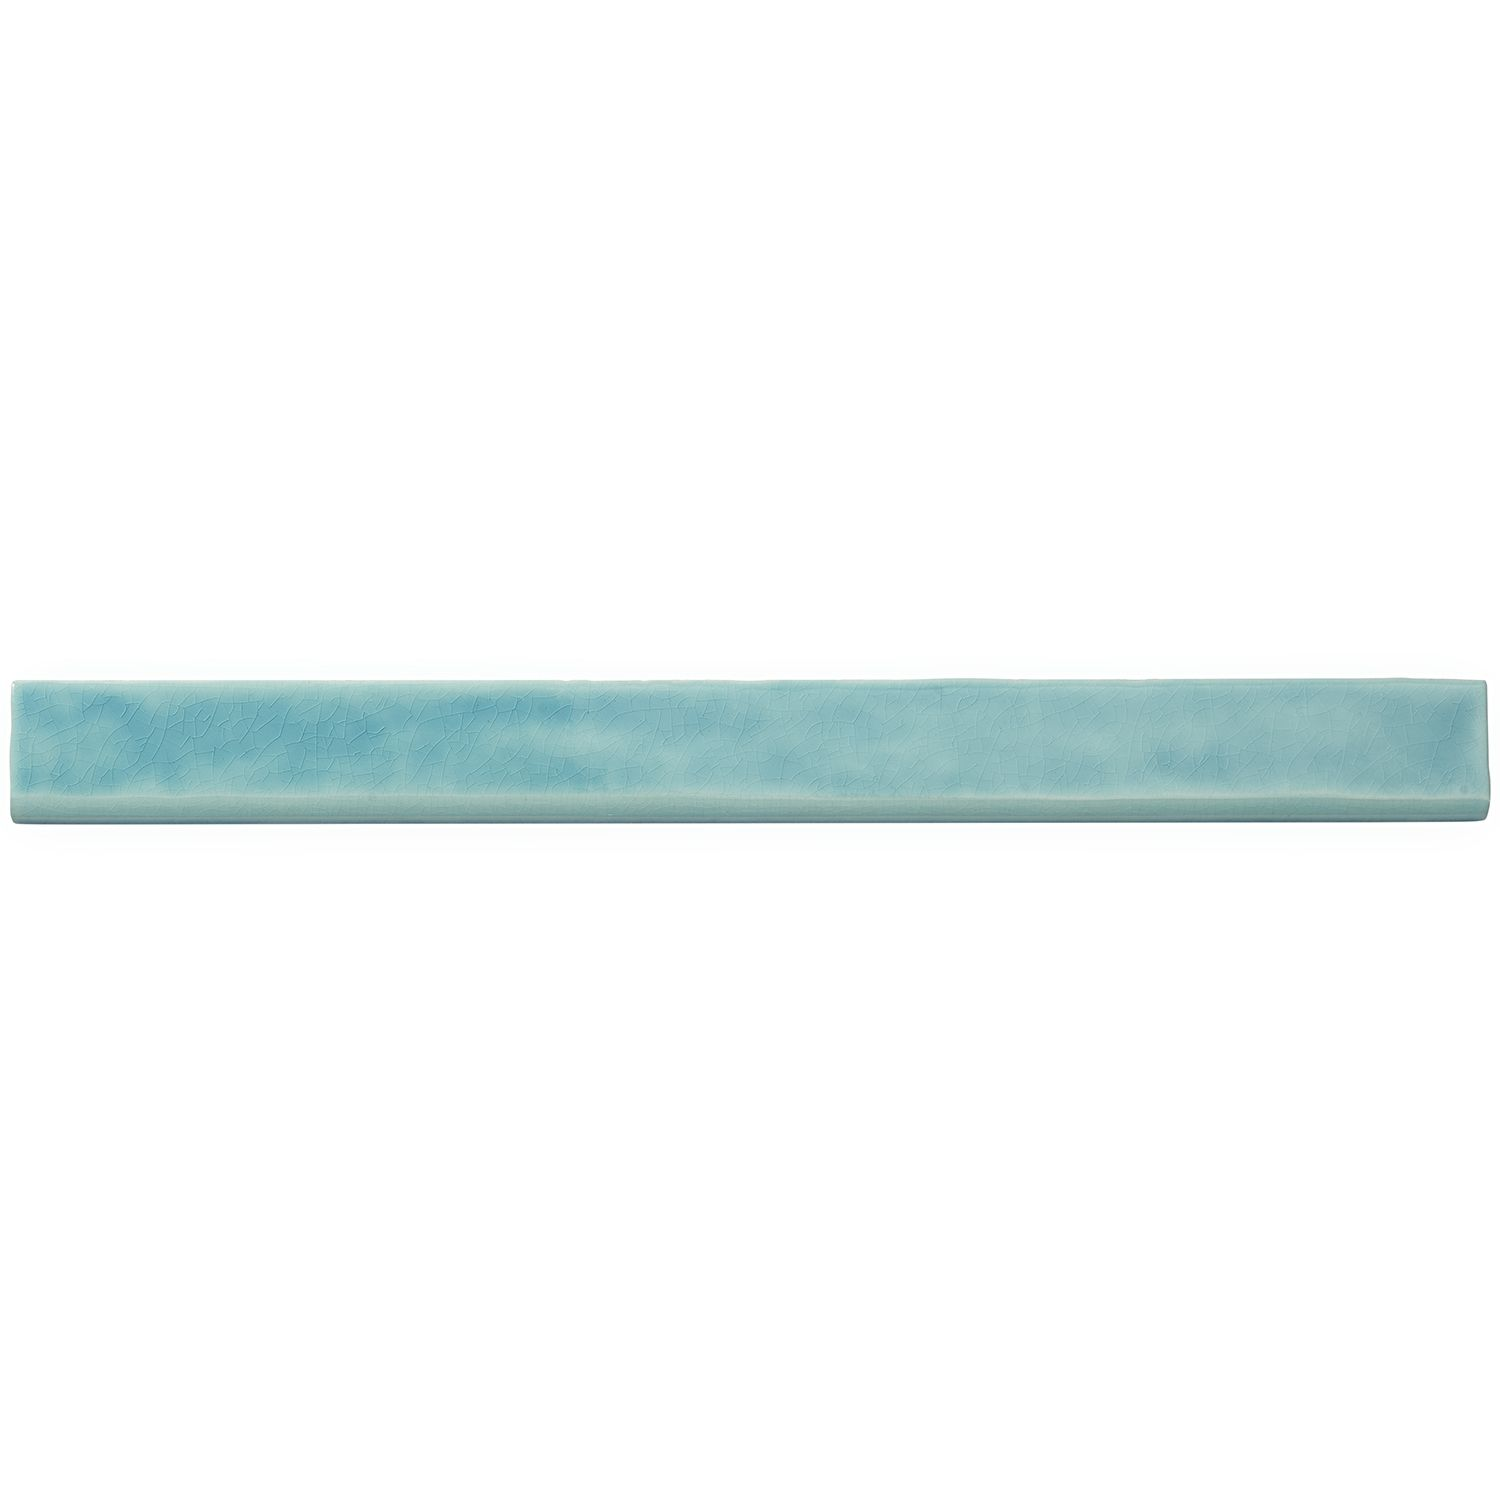 Carolina Bay 2x20 Polished Ceramic Bullnose